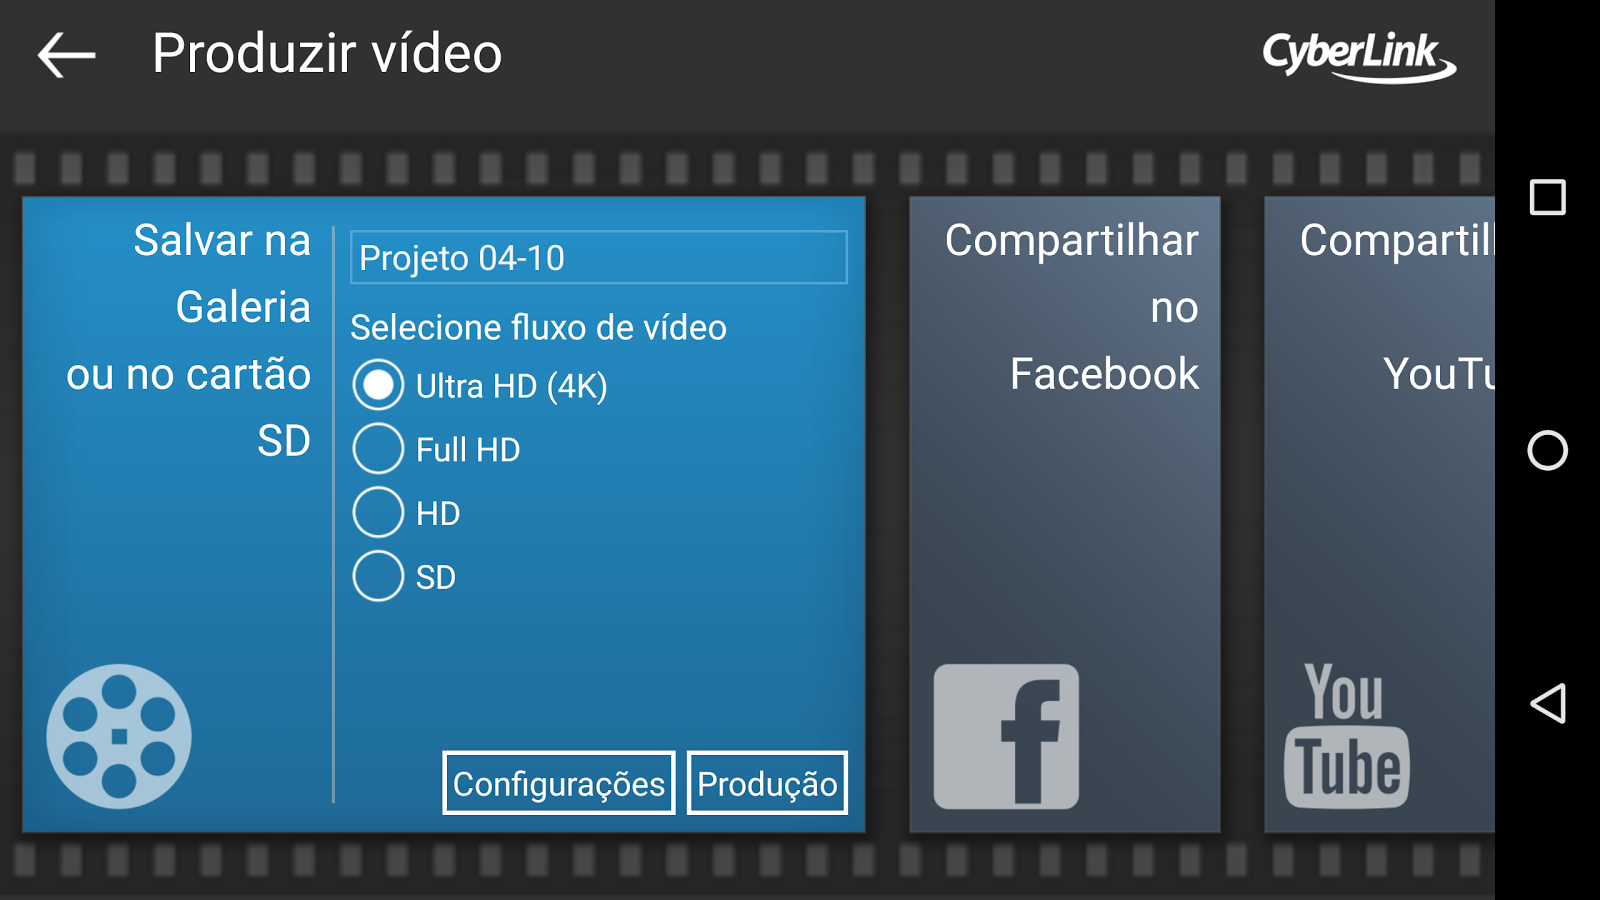 Apl editor vídeo PowerDirector: captura de tela